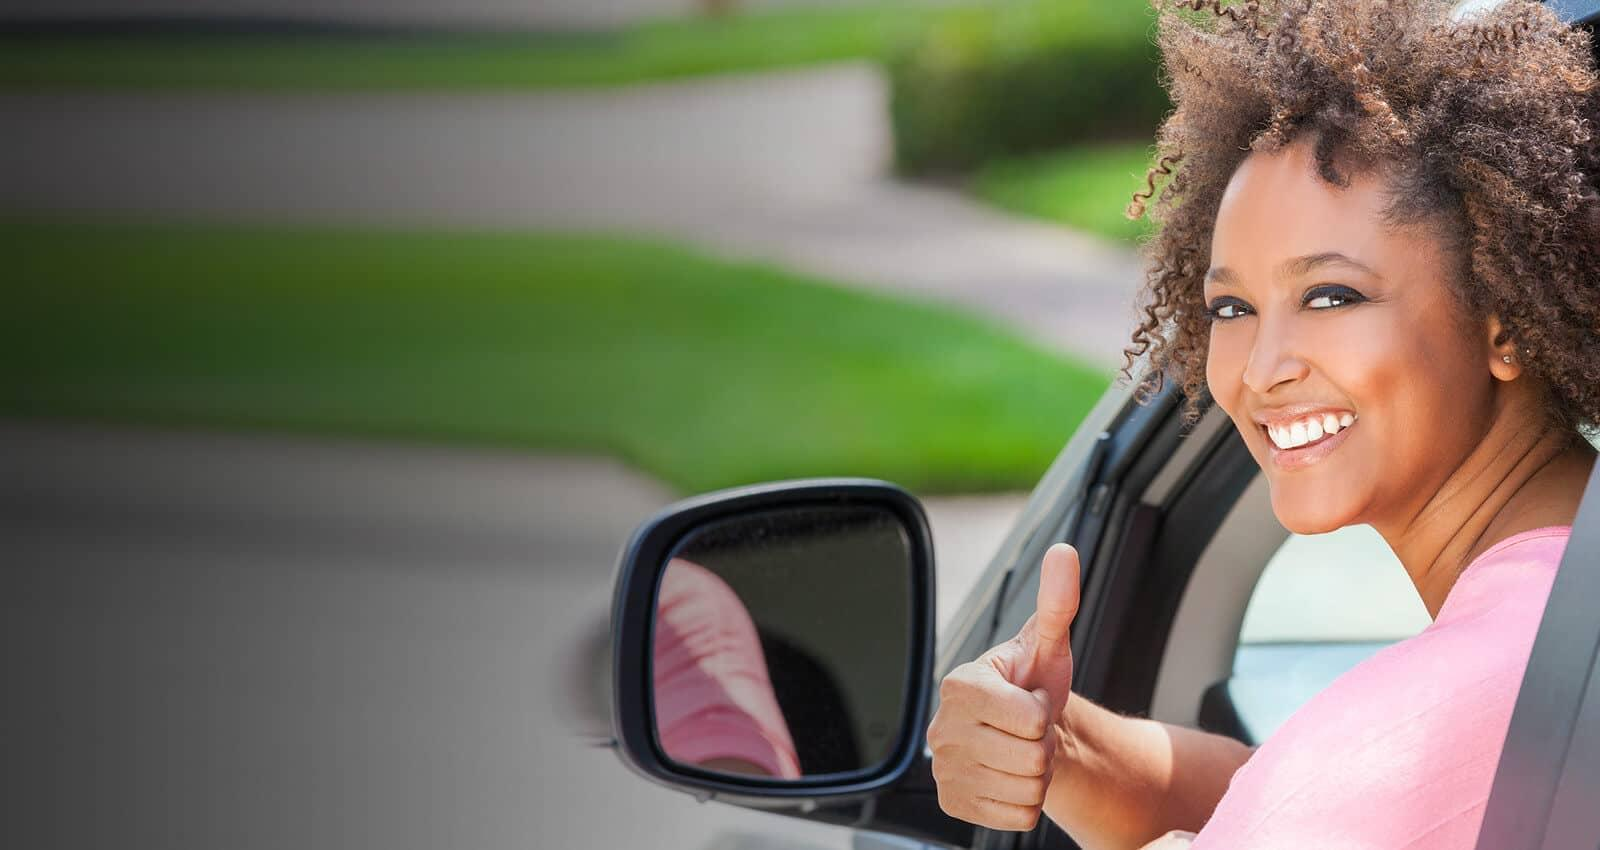 Car Hop Locations: Auto Financing For Bad Or No Credit